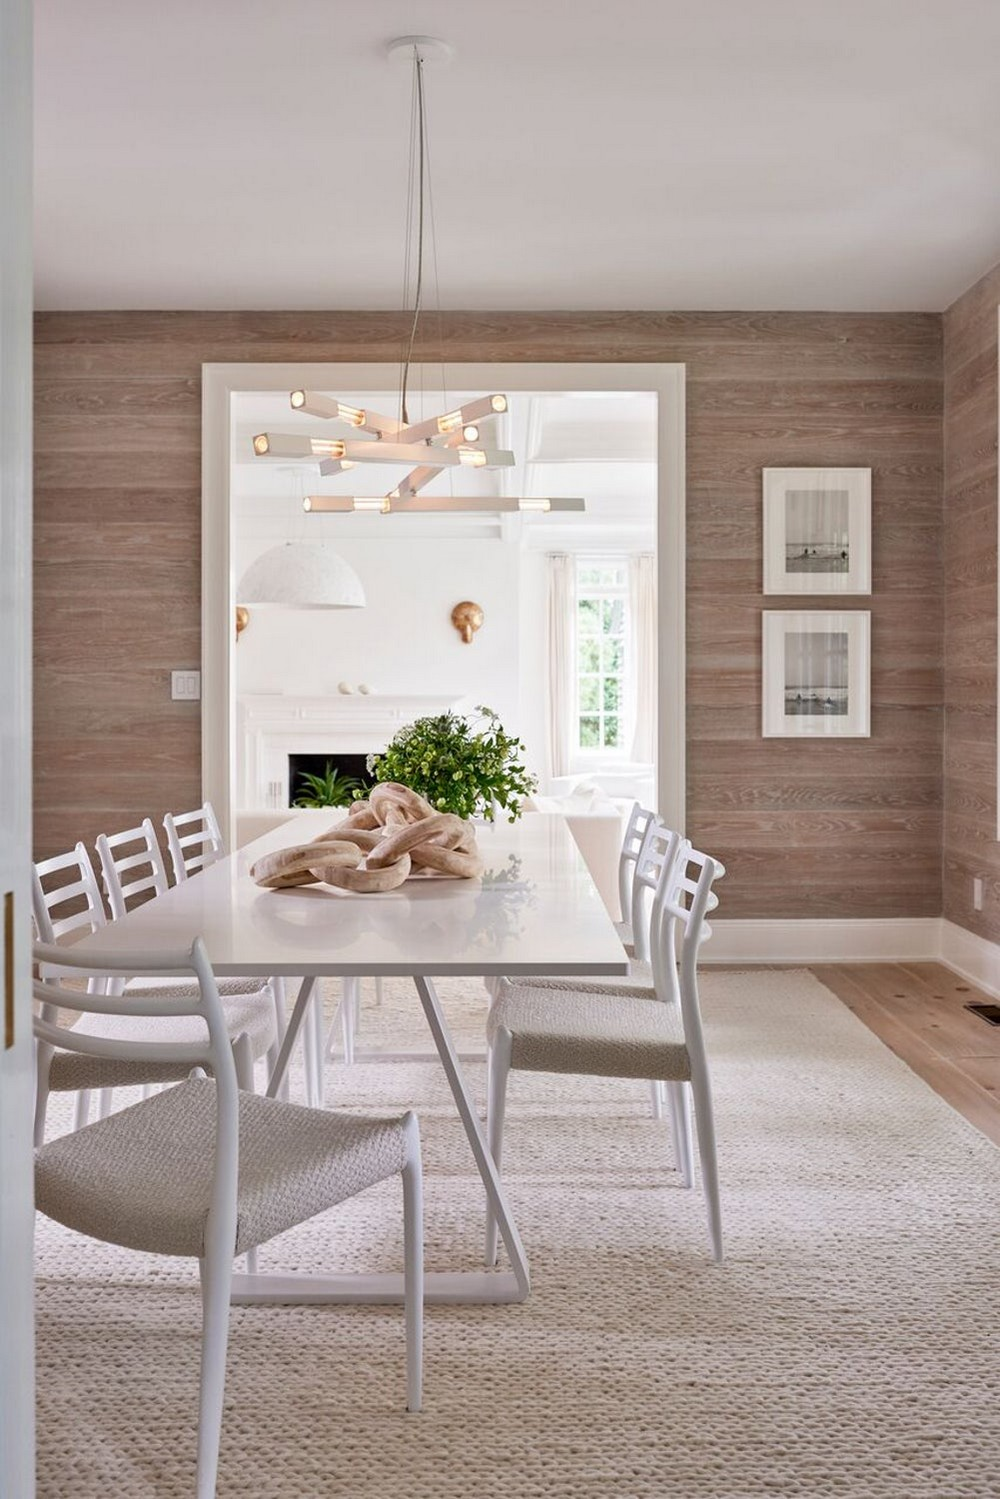 timothy godbold Relaxed, Sophisticated, Chic: Dining Rooms by Timothy Godbold 2 1stdibs